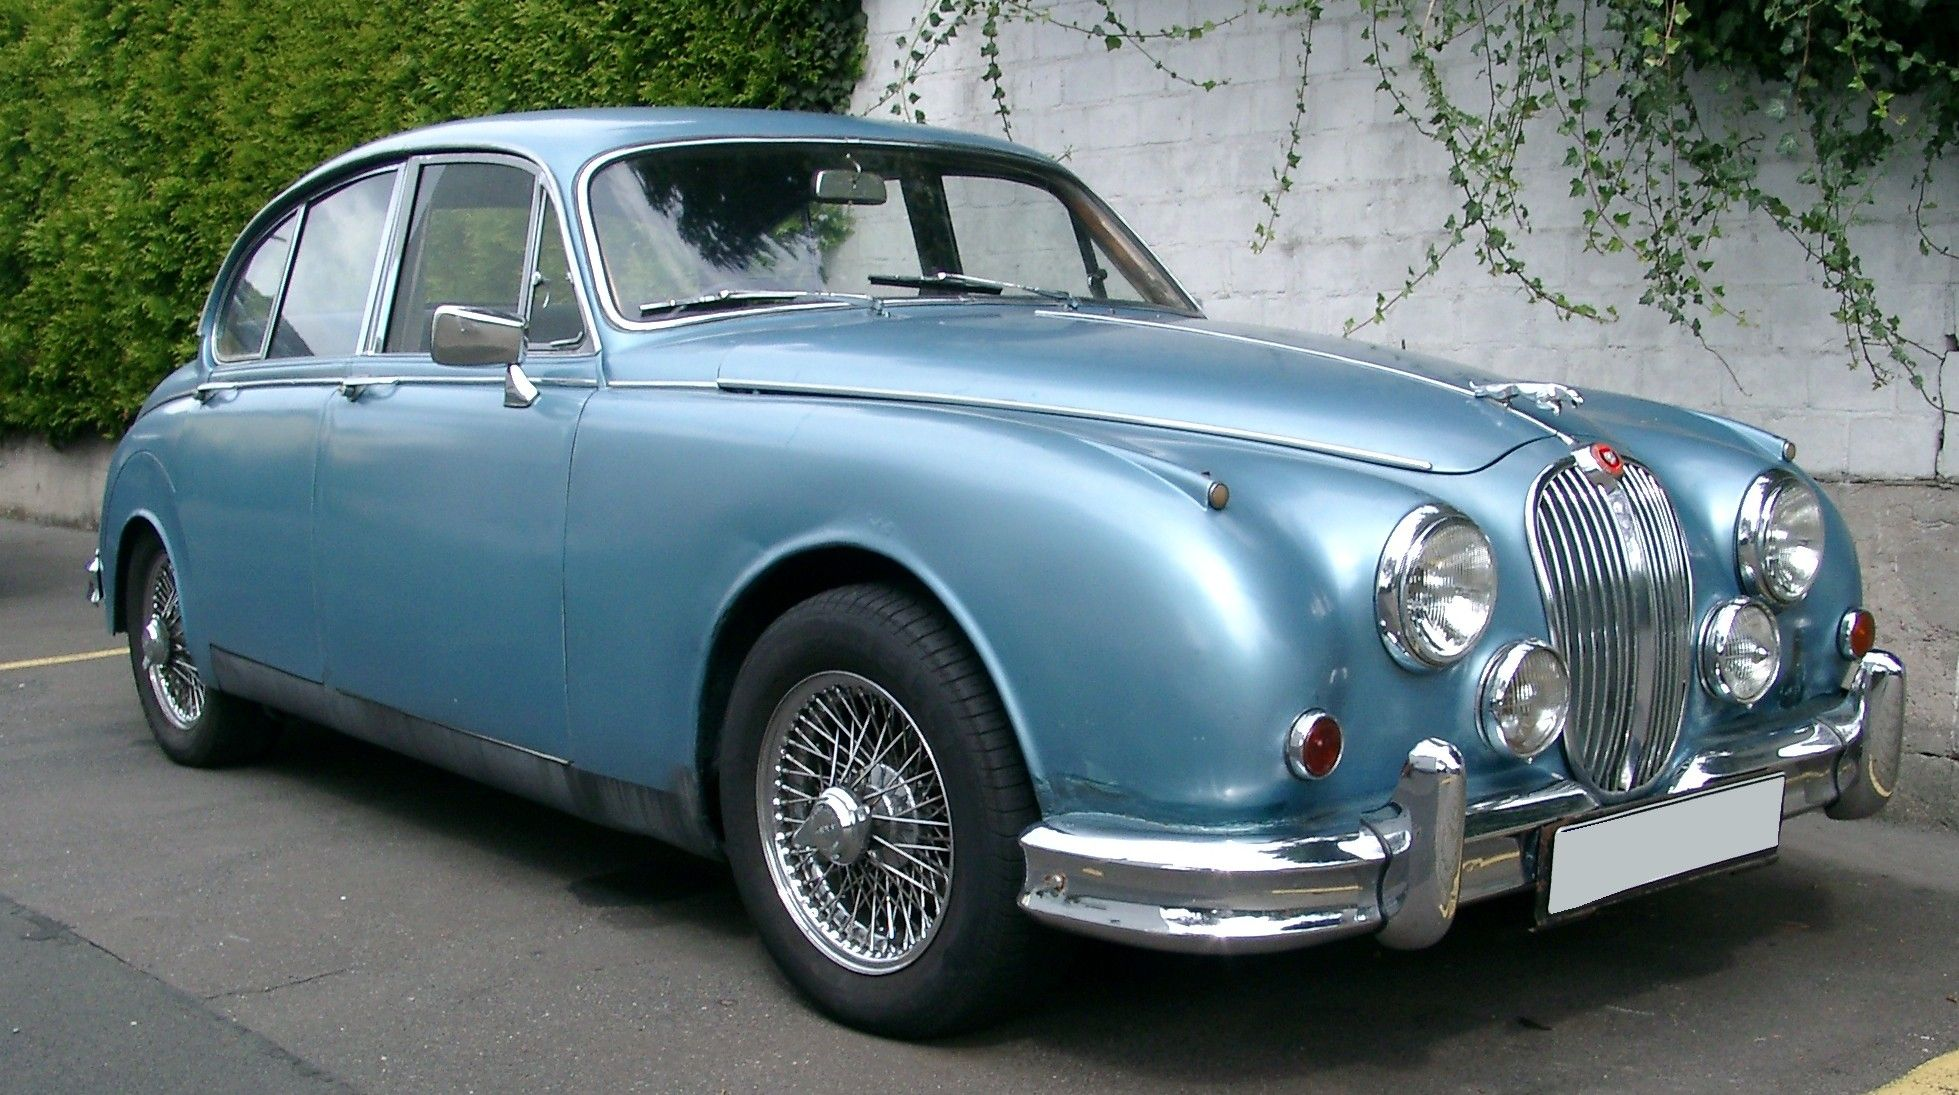 Jaguar Mark 2 1959 Jaguar Car Classic Cars Jaguar